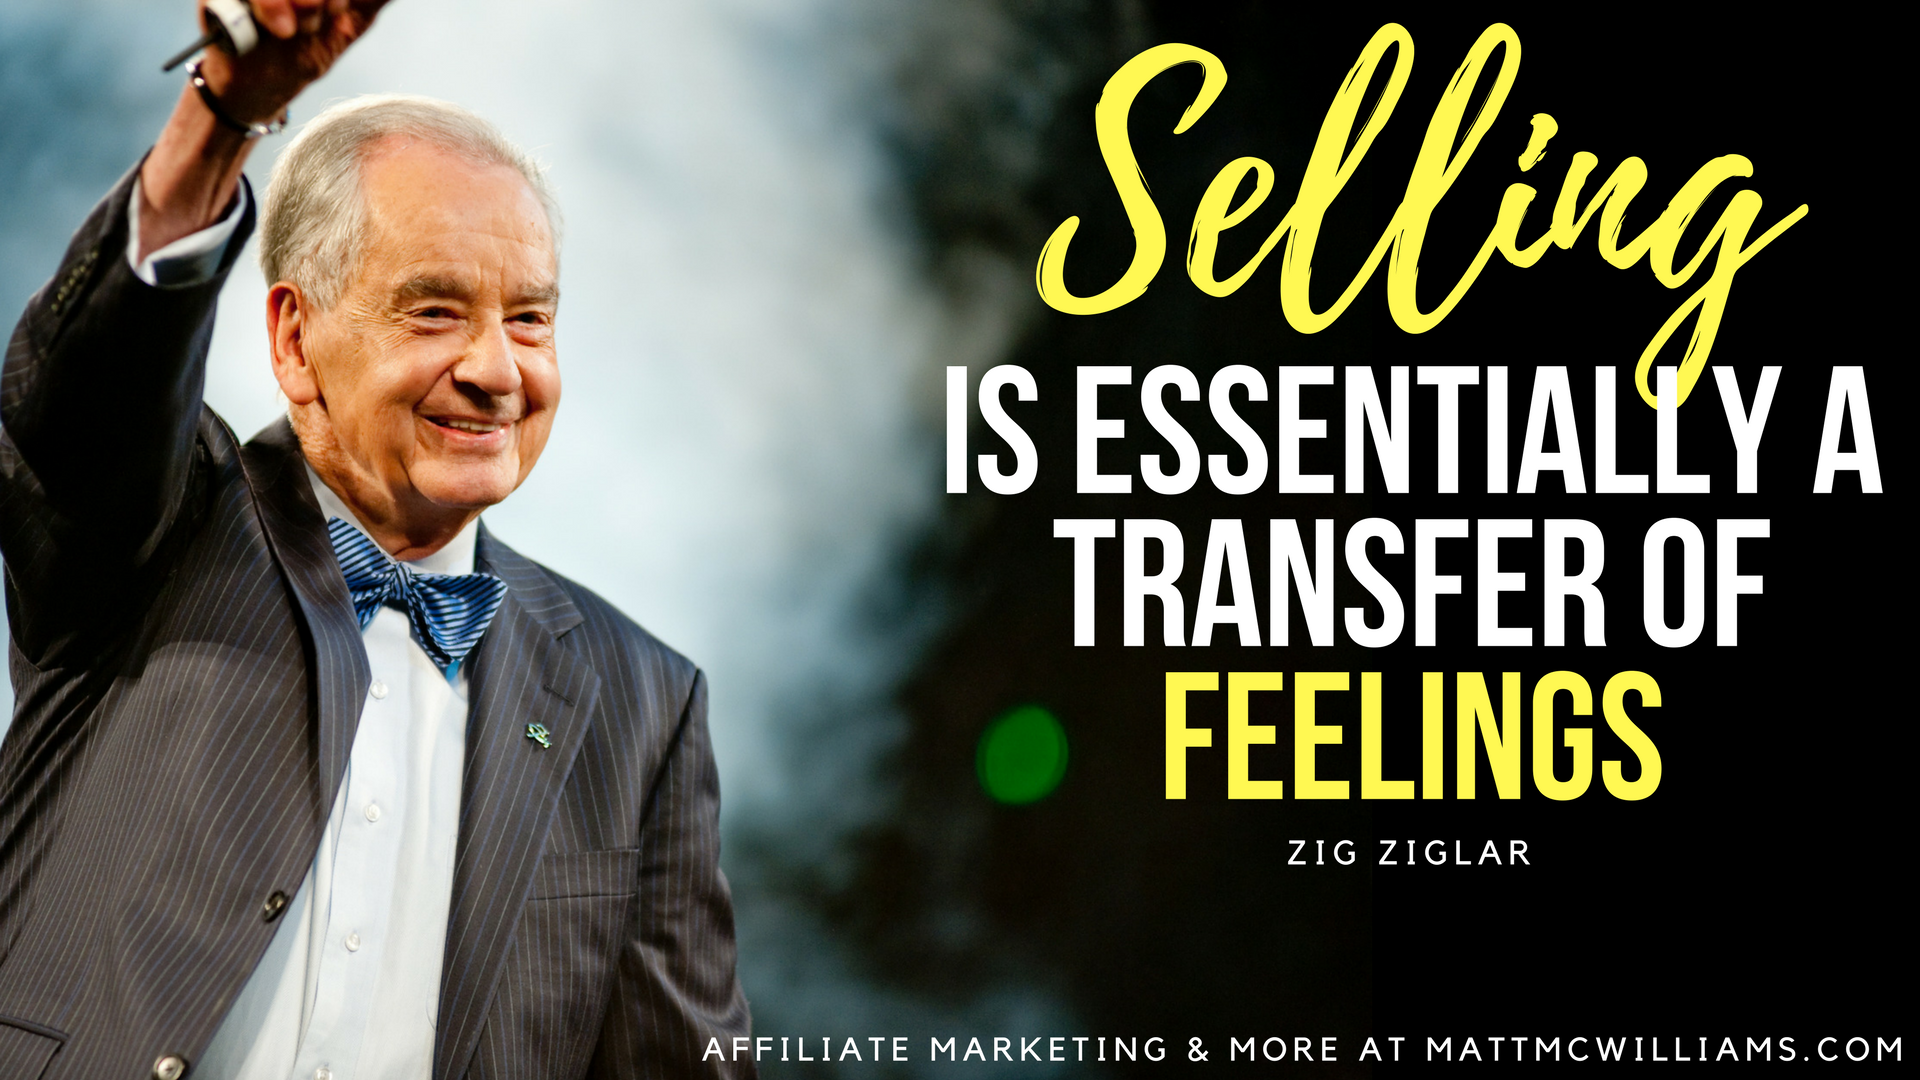 Zig Ziglar selling is transfer of feelings quote